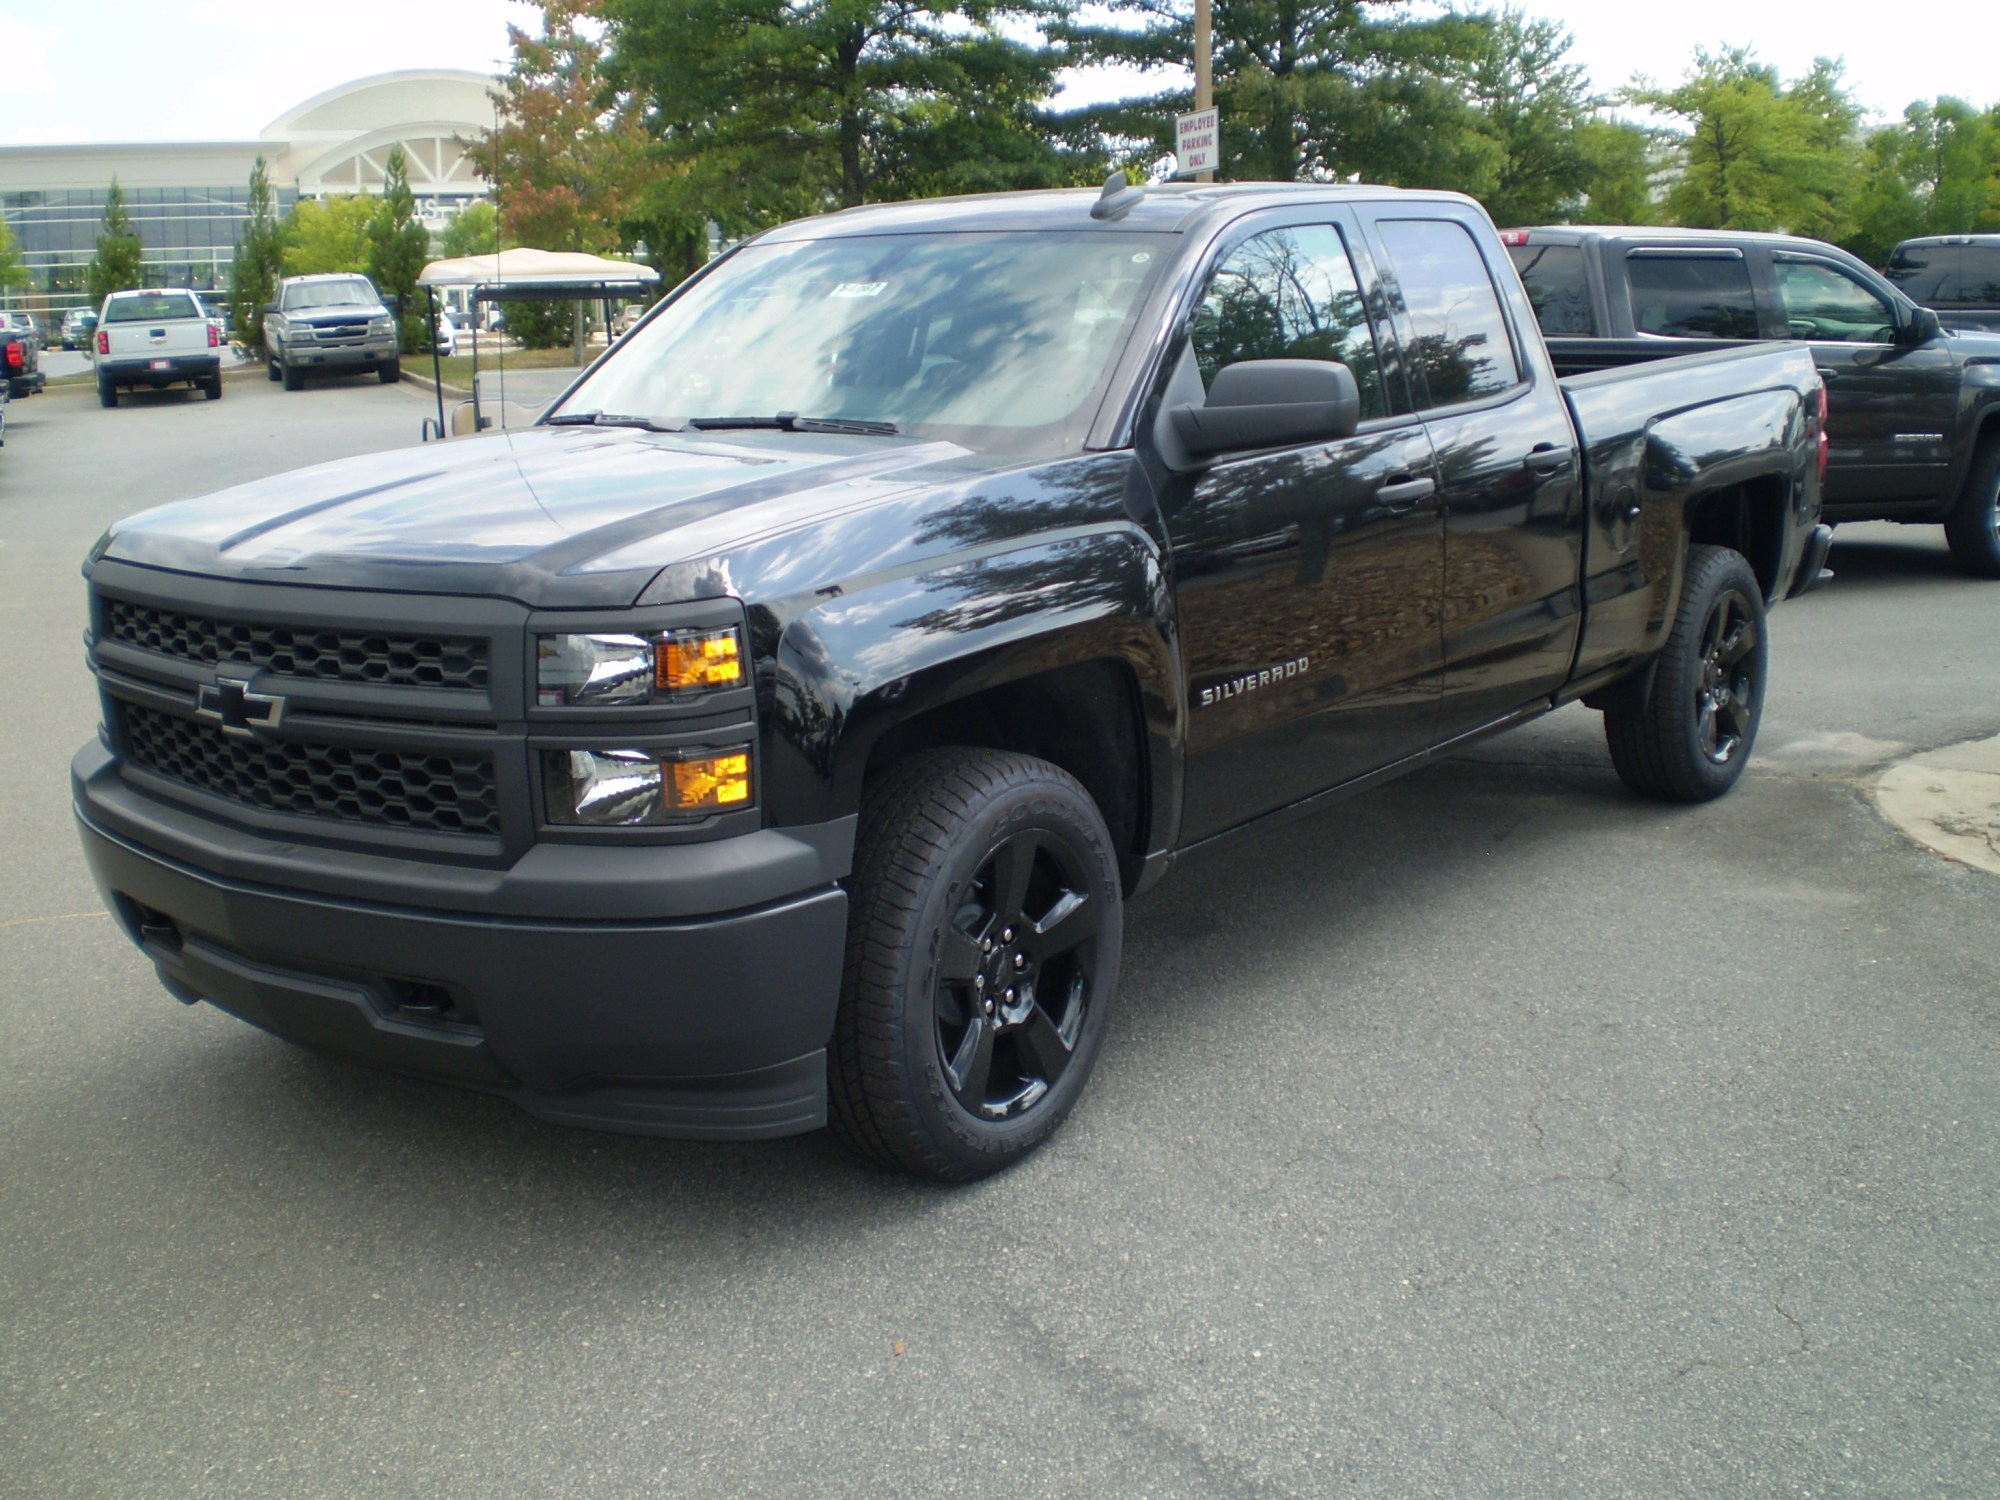 hight resolution of file 2015 chevrolet silverado wt double cab standard bed black out edition observe jpg